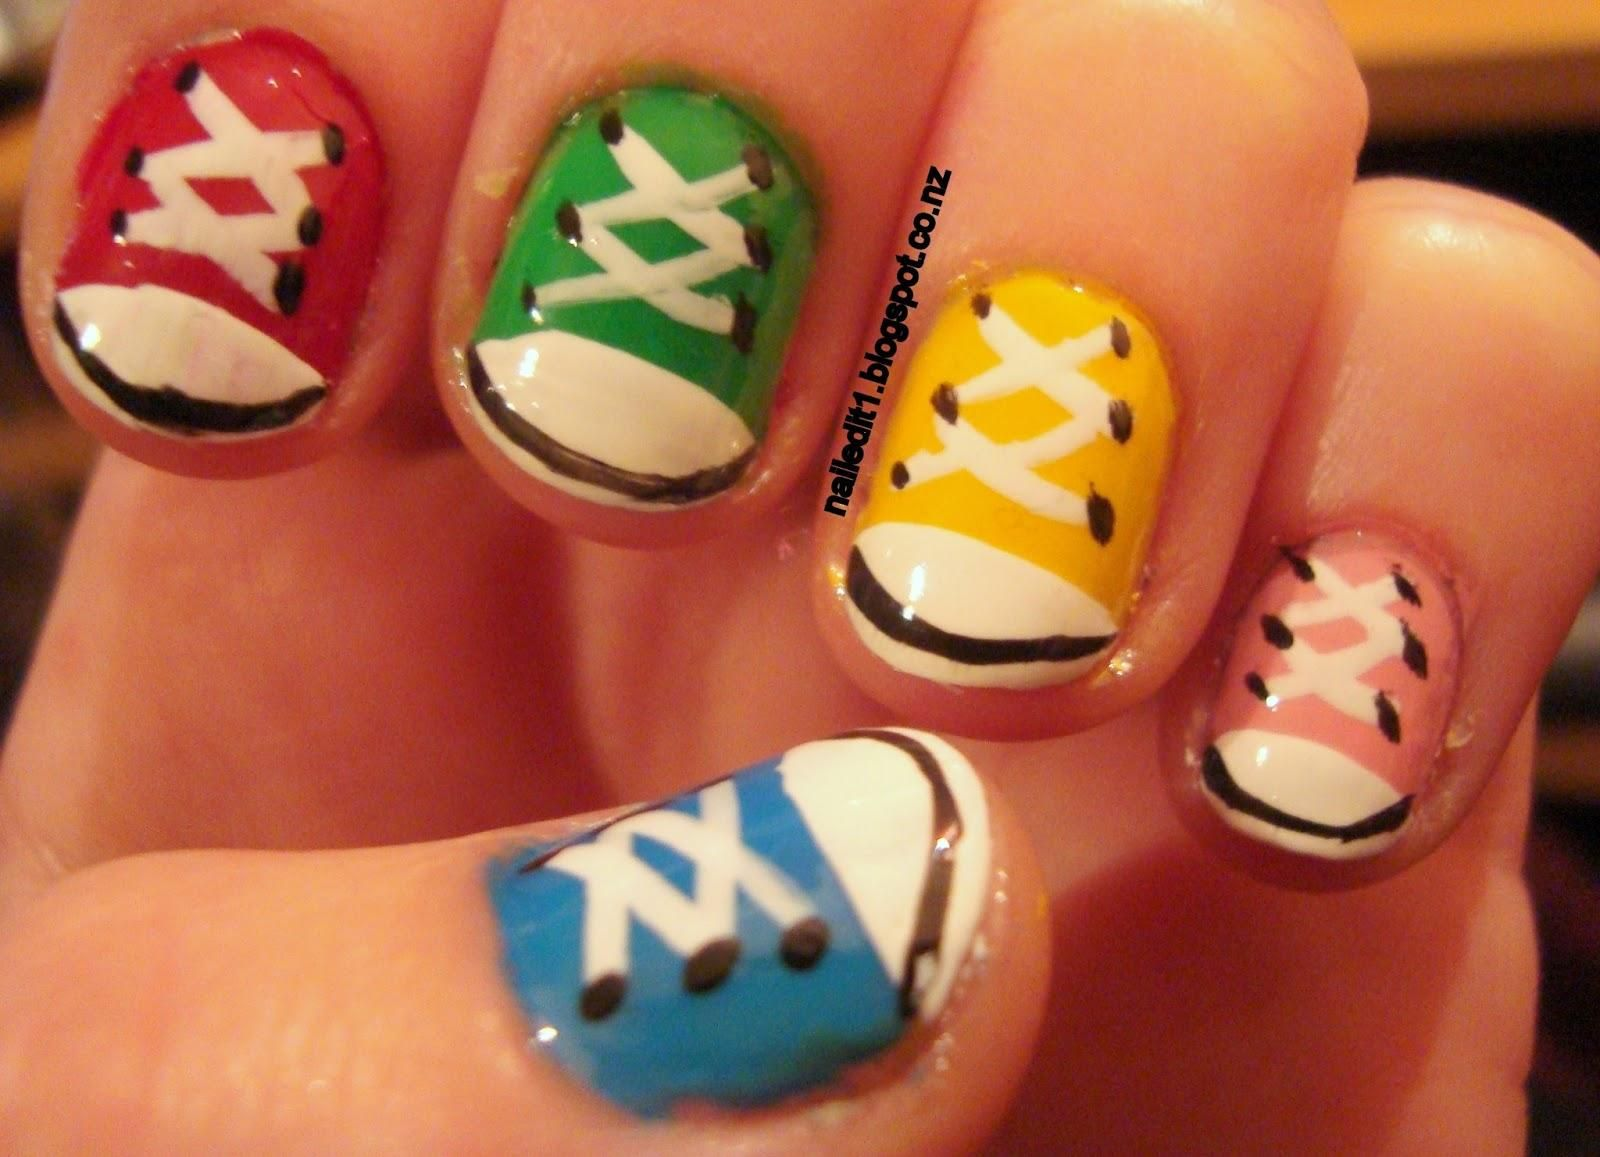 Cool Nail Designs You Can Do At Home Nail Designs Pinterest